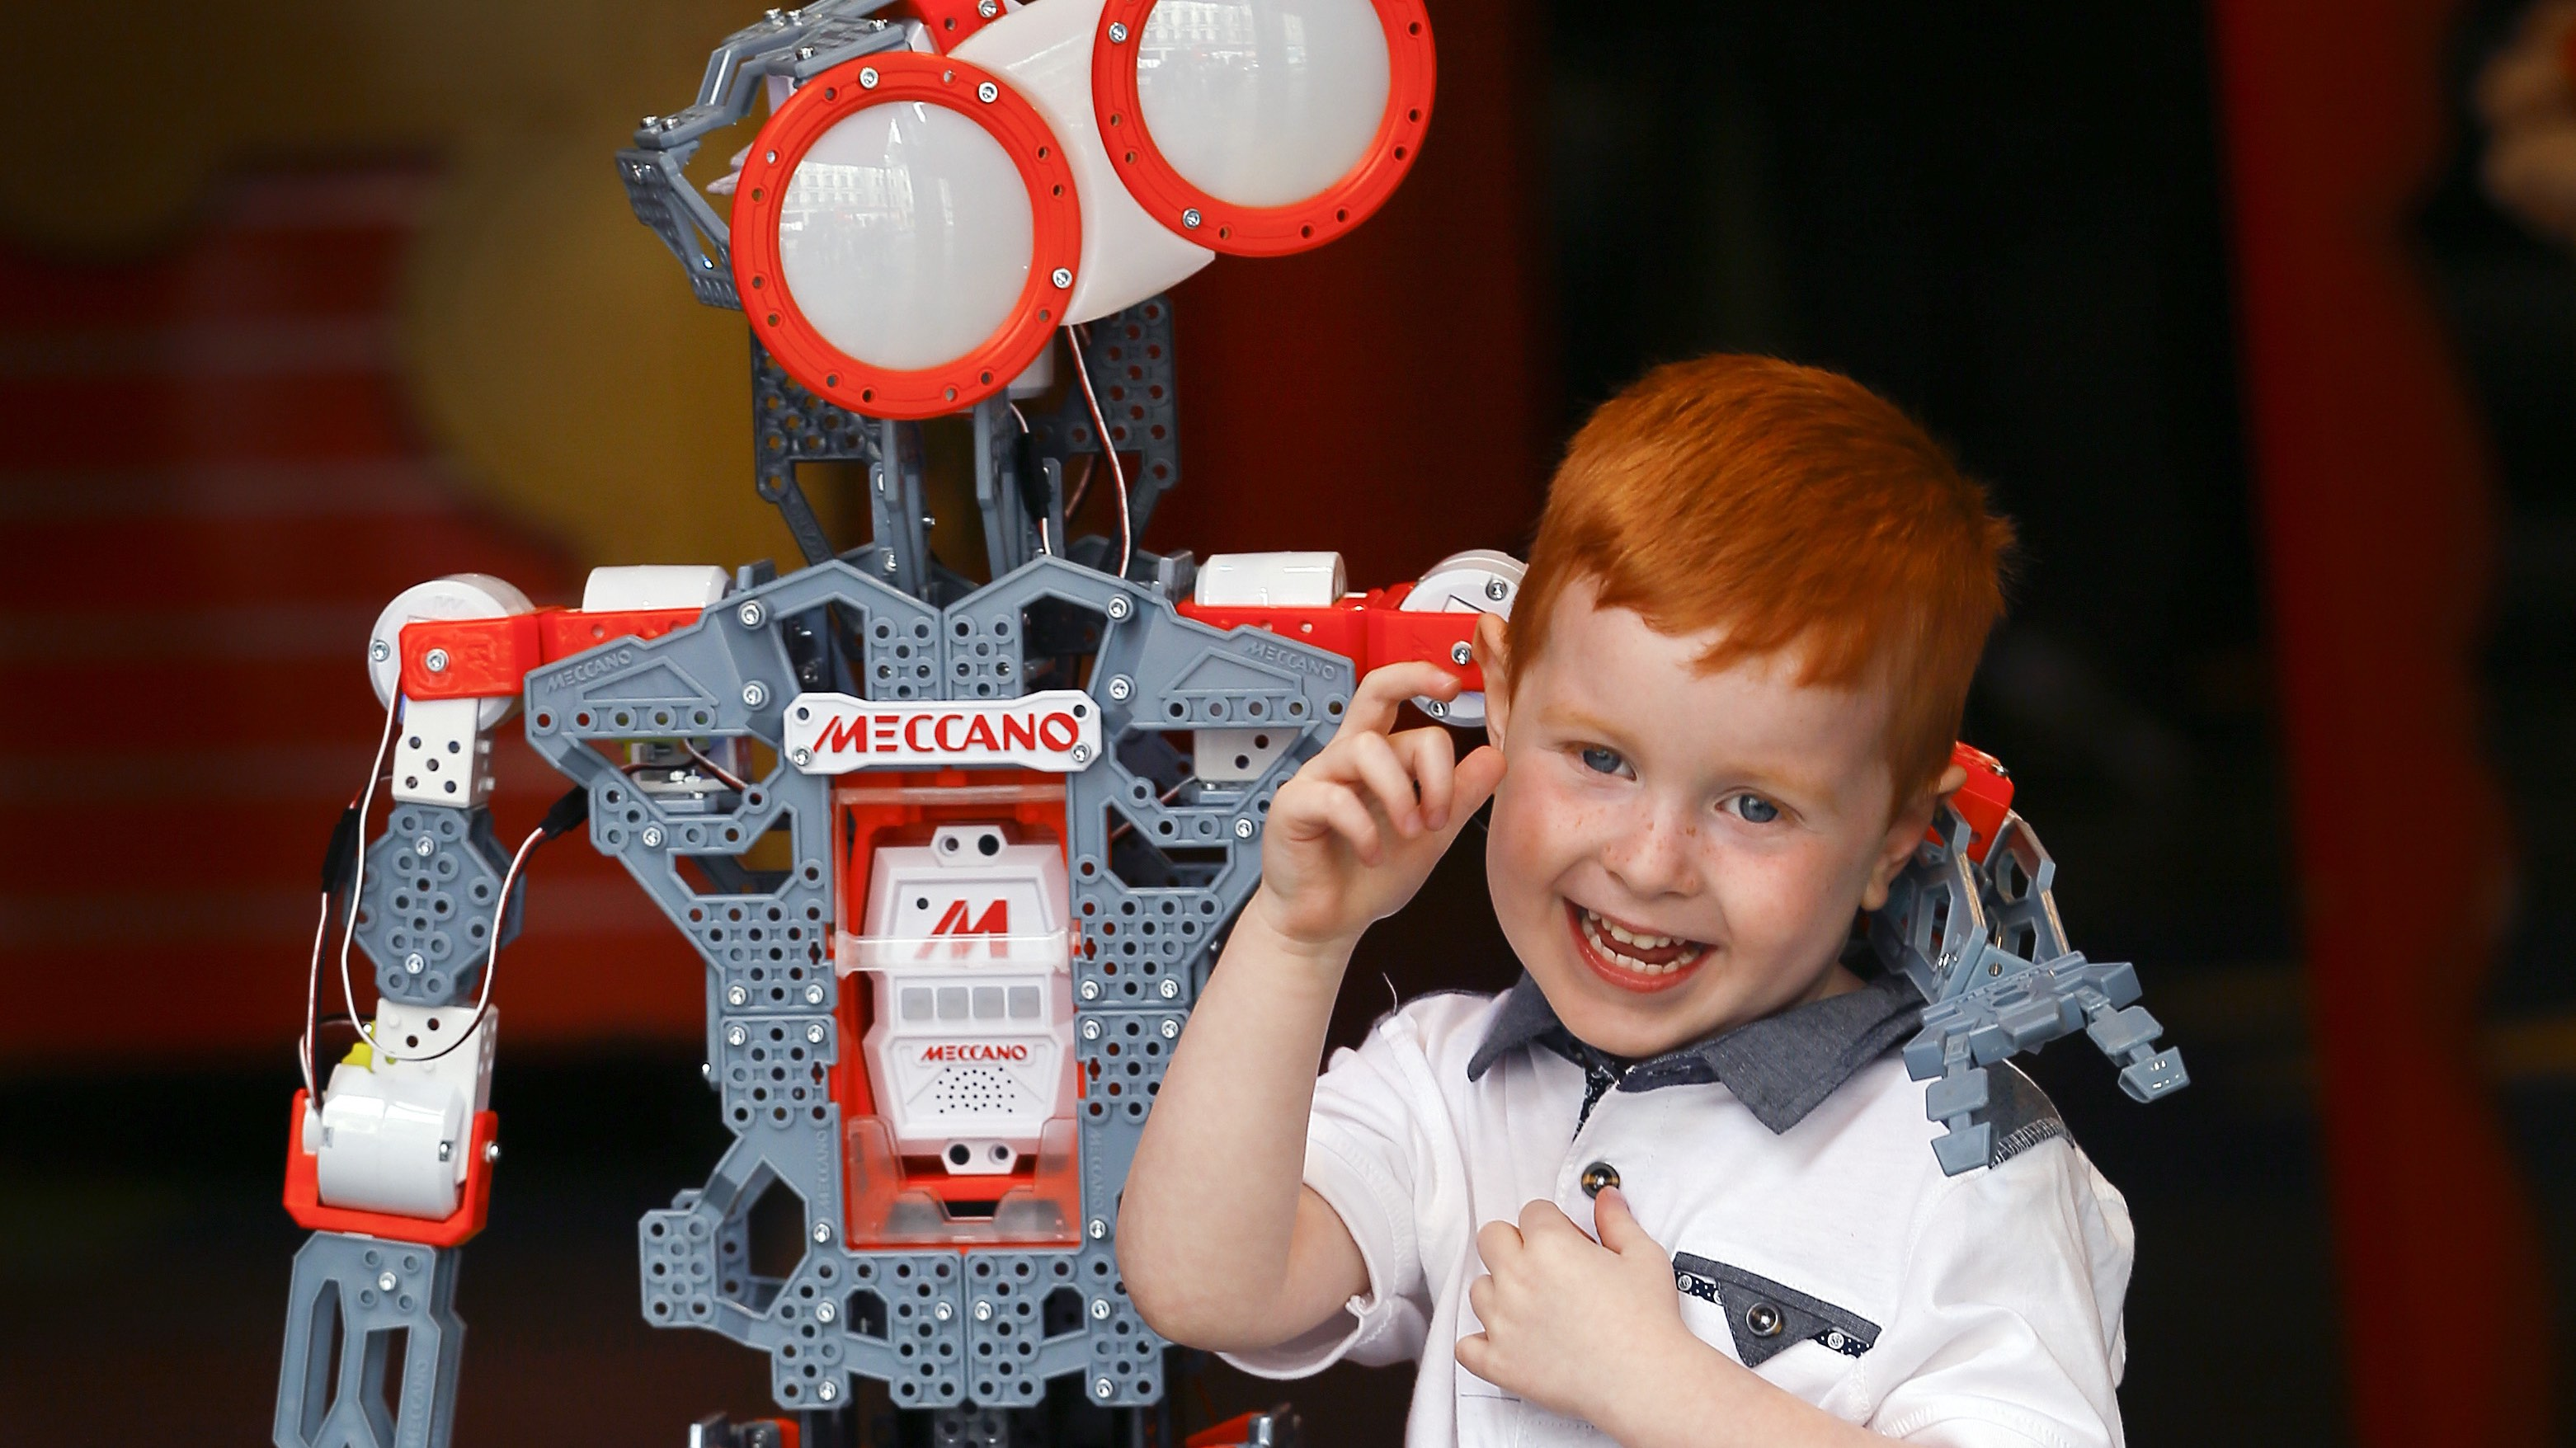 Tristan Robertson Jeyes, 4, gets a hug from a Meccanoid G15 KS robot, pre-programmed with over 1000 phrases, in London, Thursday, June 25, 2015. Christmas came early on Thursday as children were invited to play with toys that Hamleys toy shop have predicted to be best sellers this Christmas. (AP Photo/Kirsty Wigglesworth)